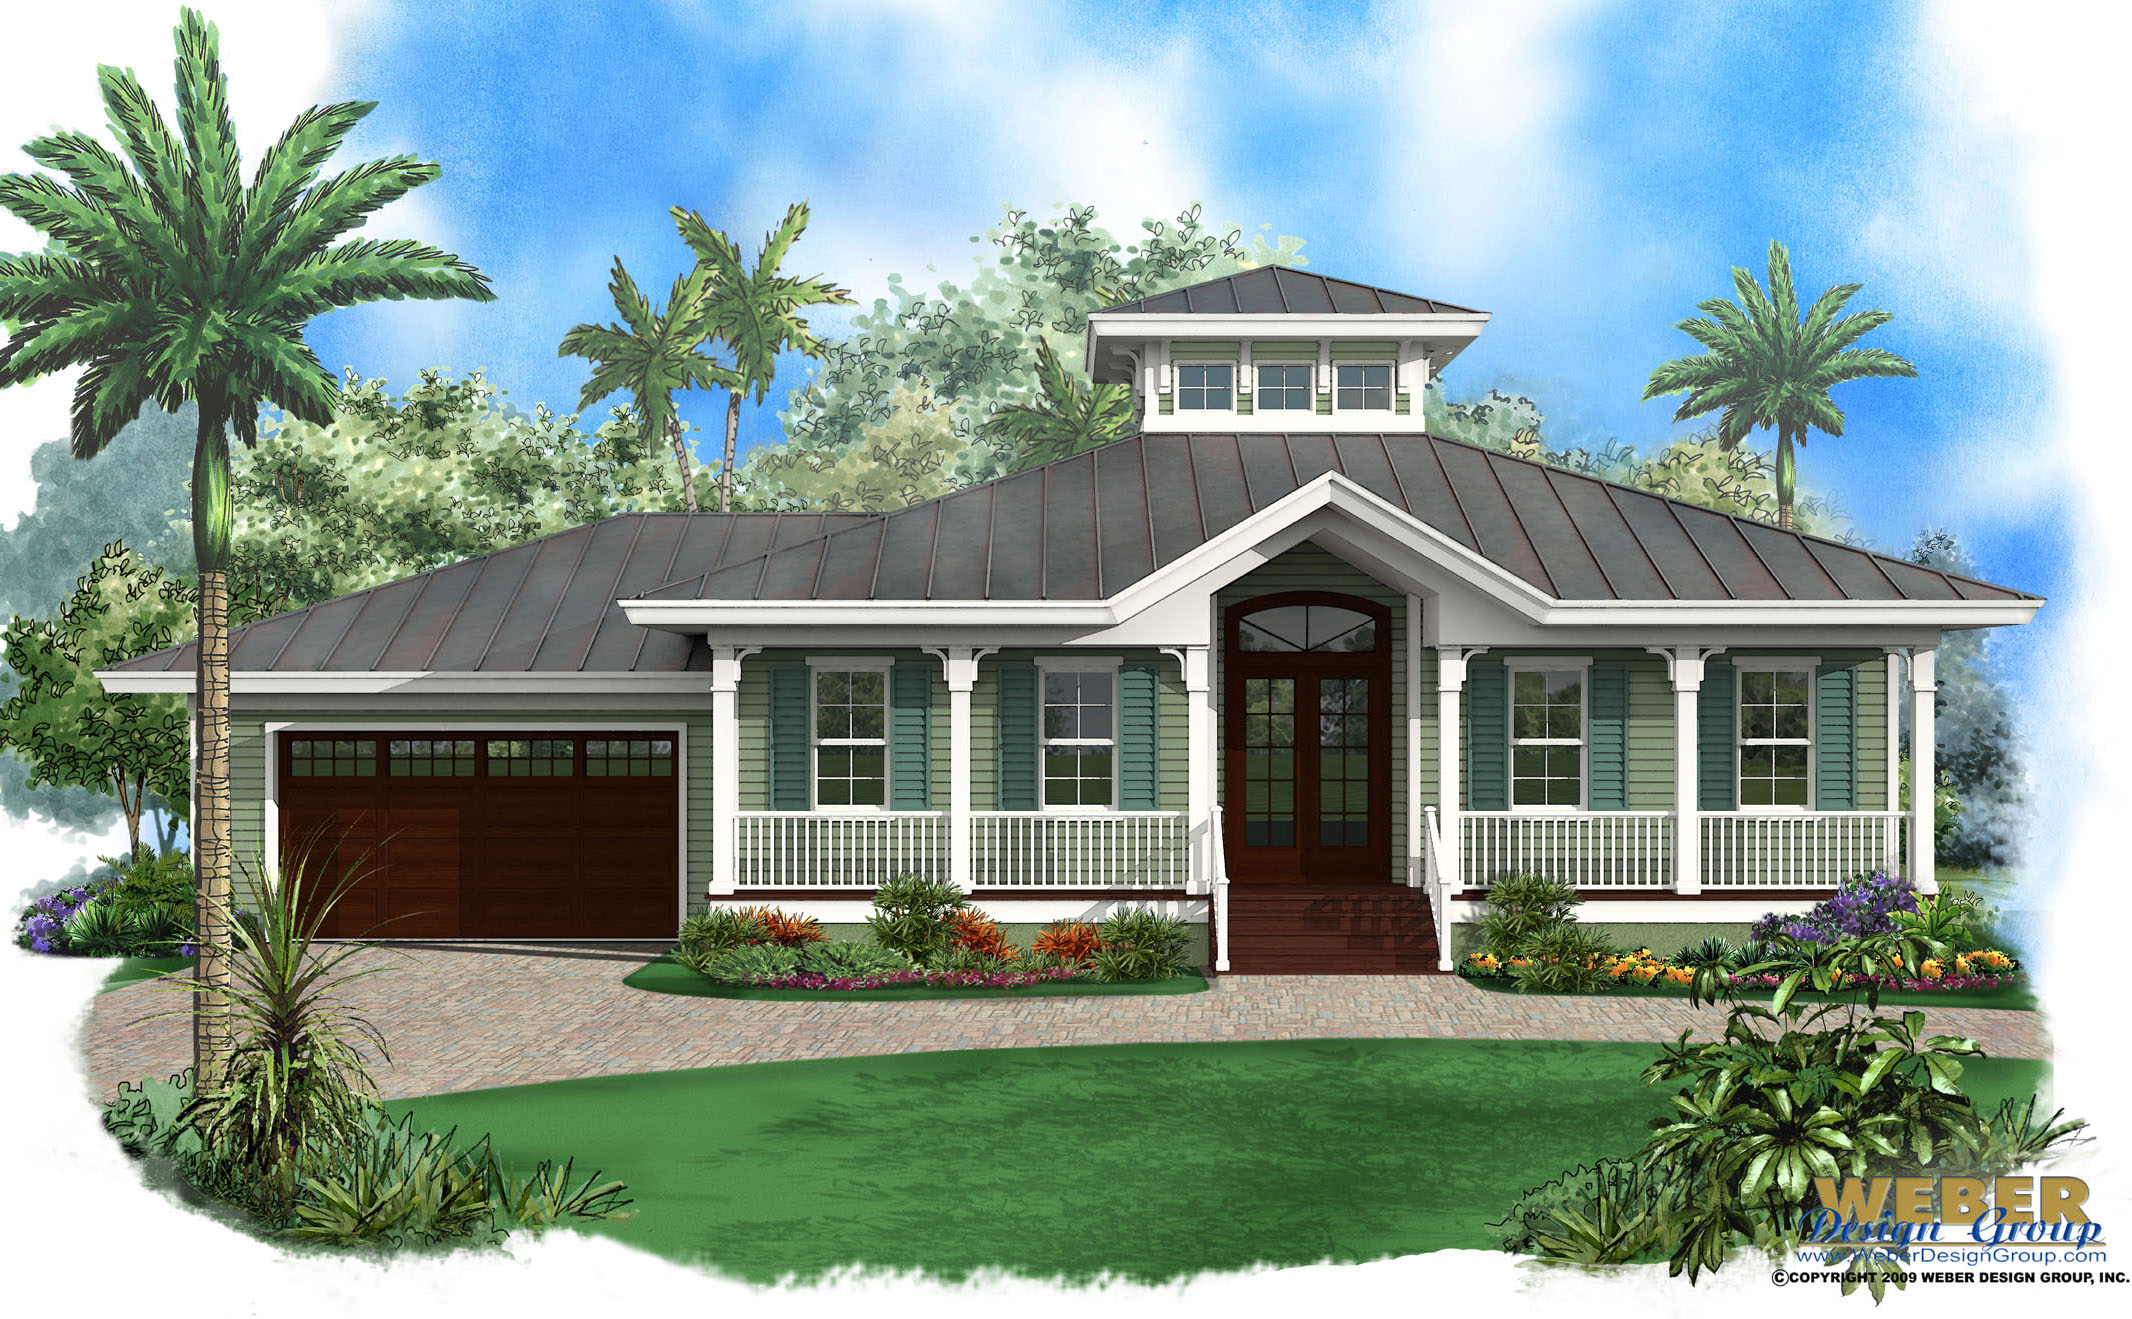 caribbean home designs. View Details Caribbean House Plans  Stock Tropical Island Style Home Floor